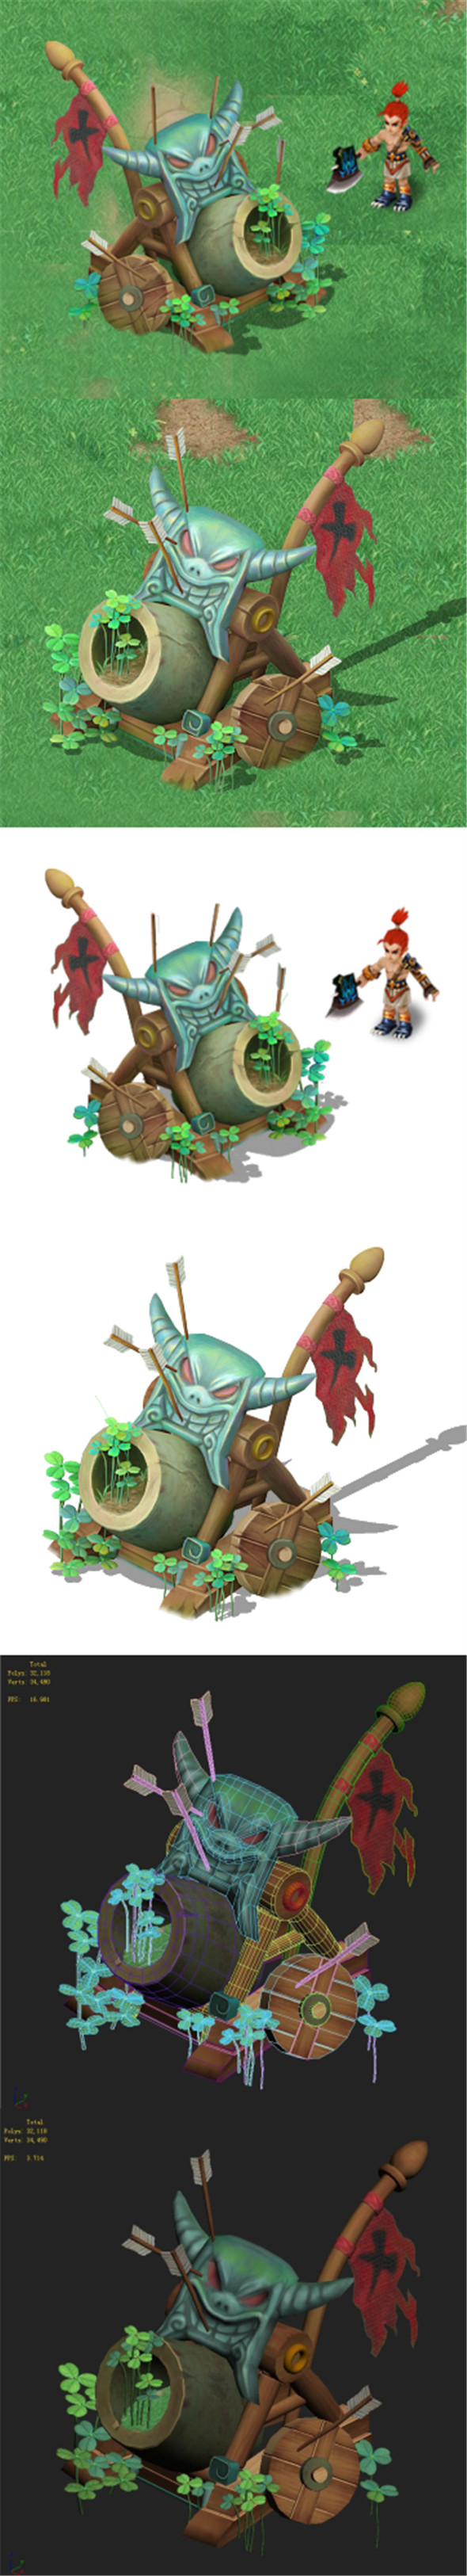 Cartoon version - Wind magic cannon - 3DOcean Item for Sale